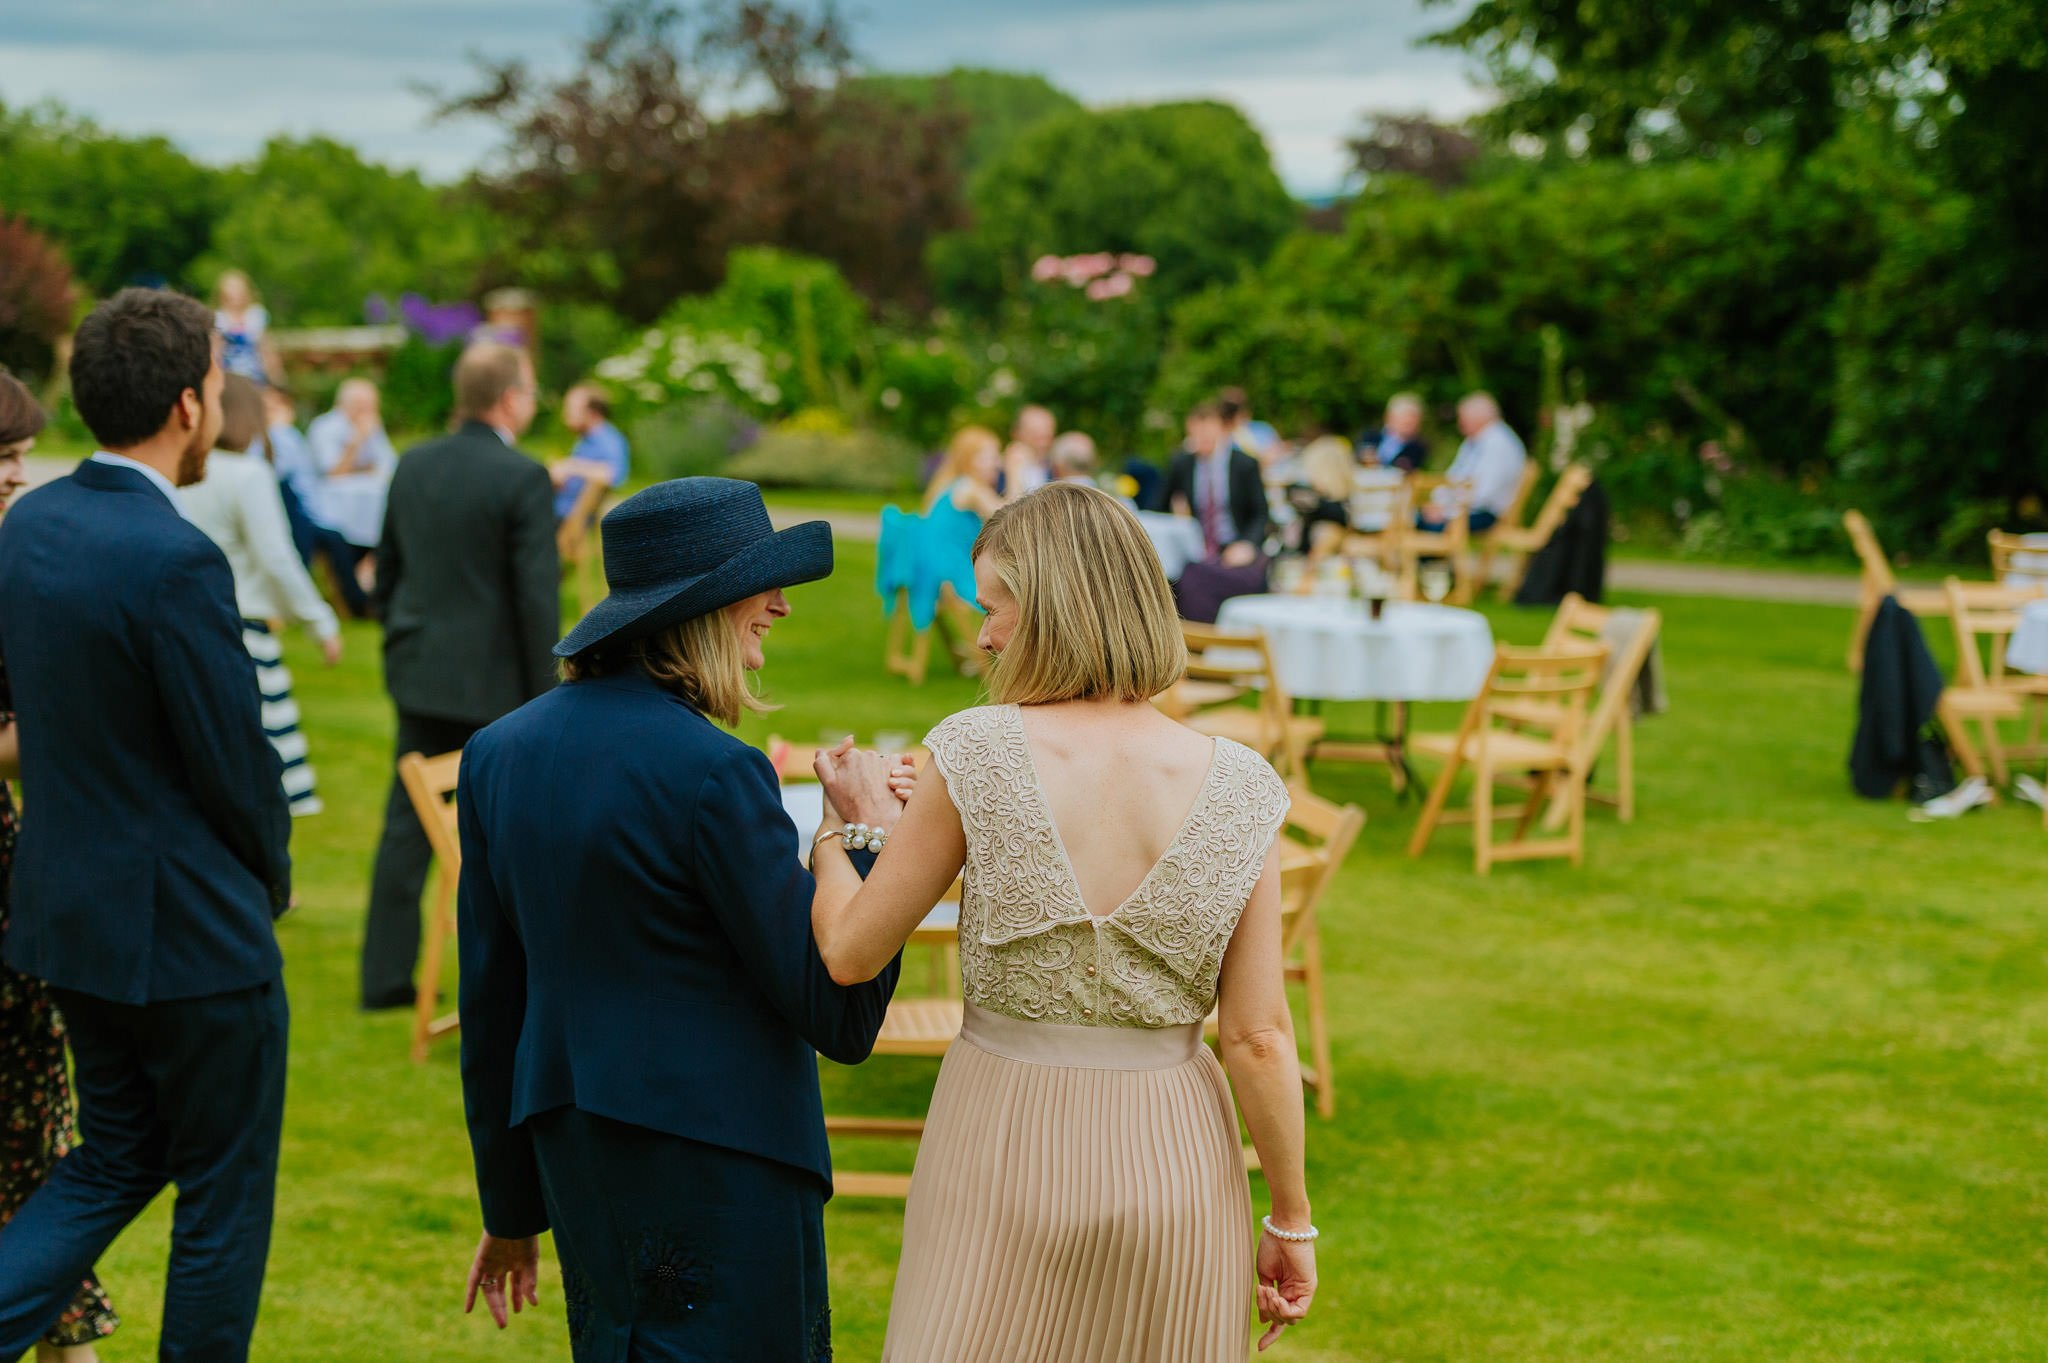 Wedding photography at Homme House in Herefordshire, West Midlands 68